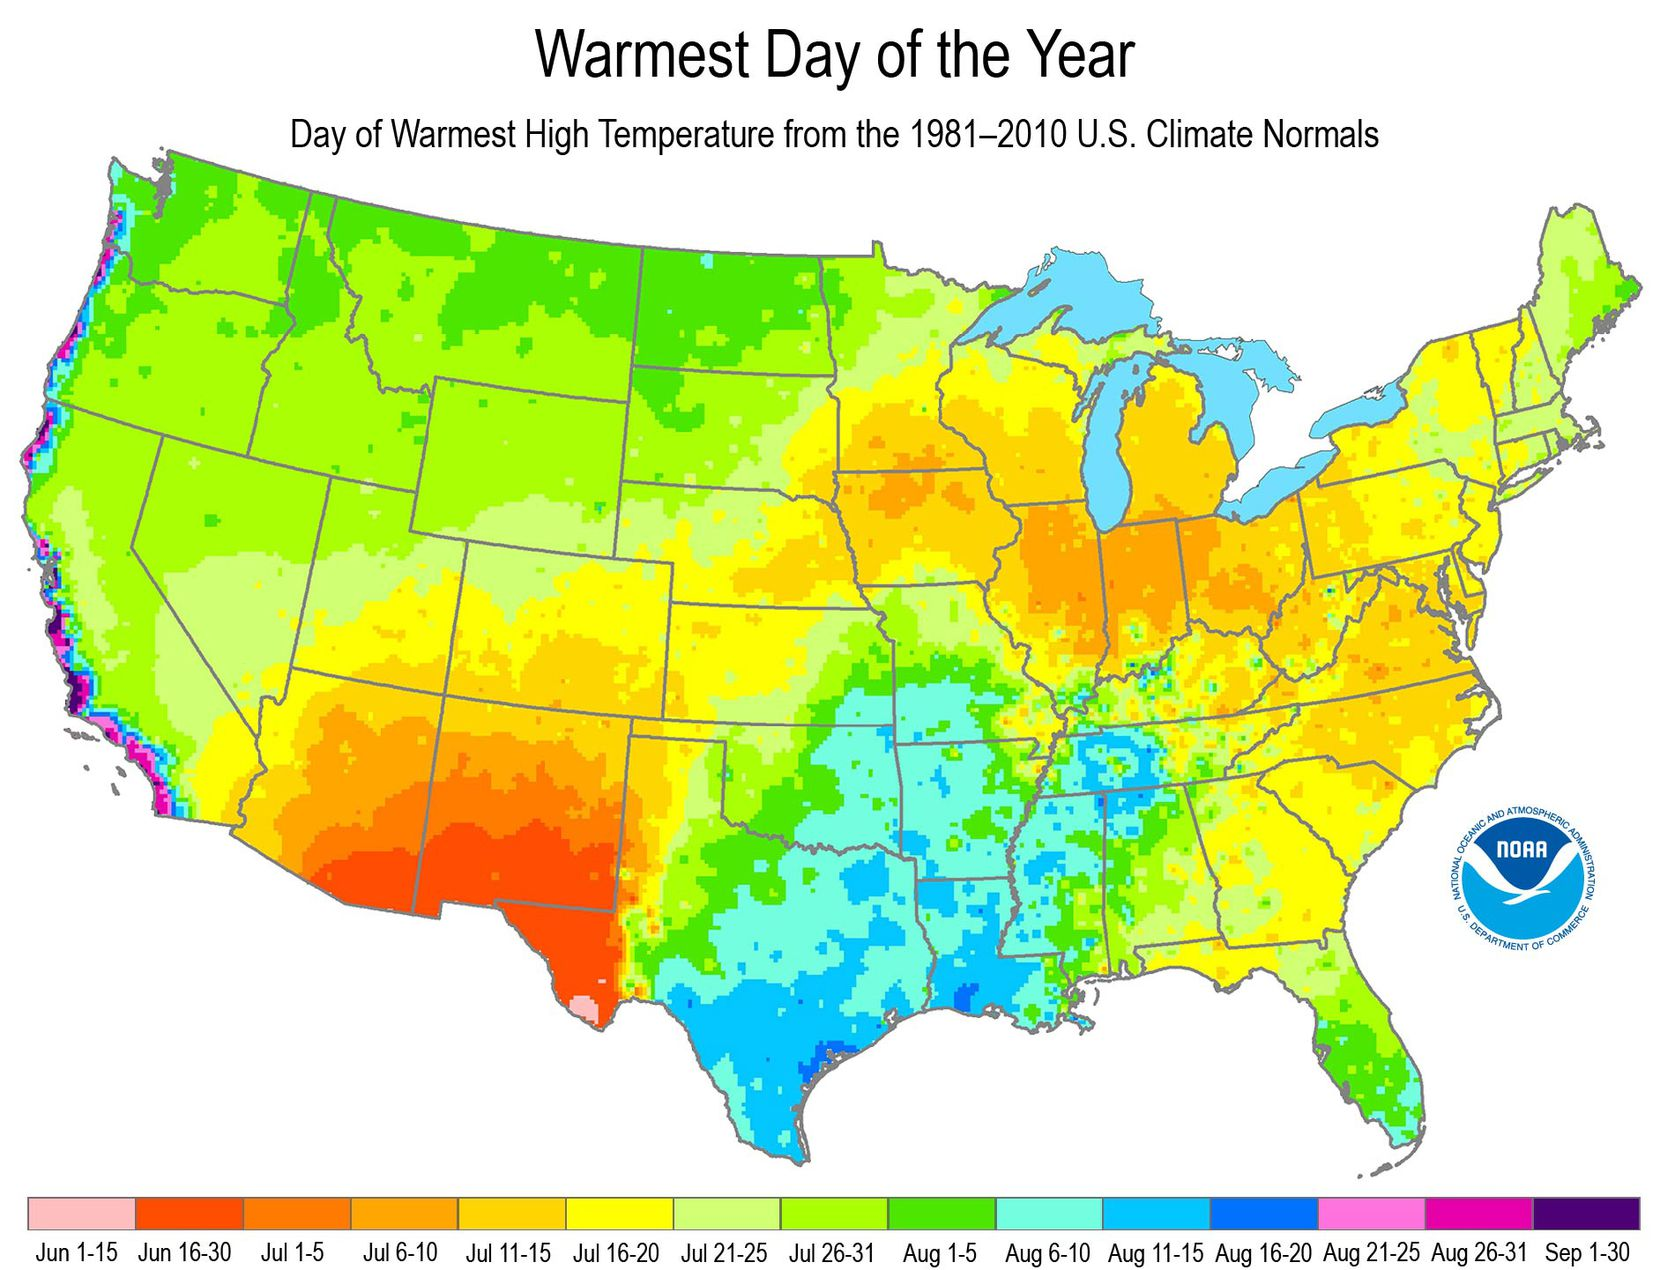 This map shows when U.S. cities typically see their hottest day of the year based on climate averages.